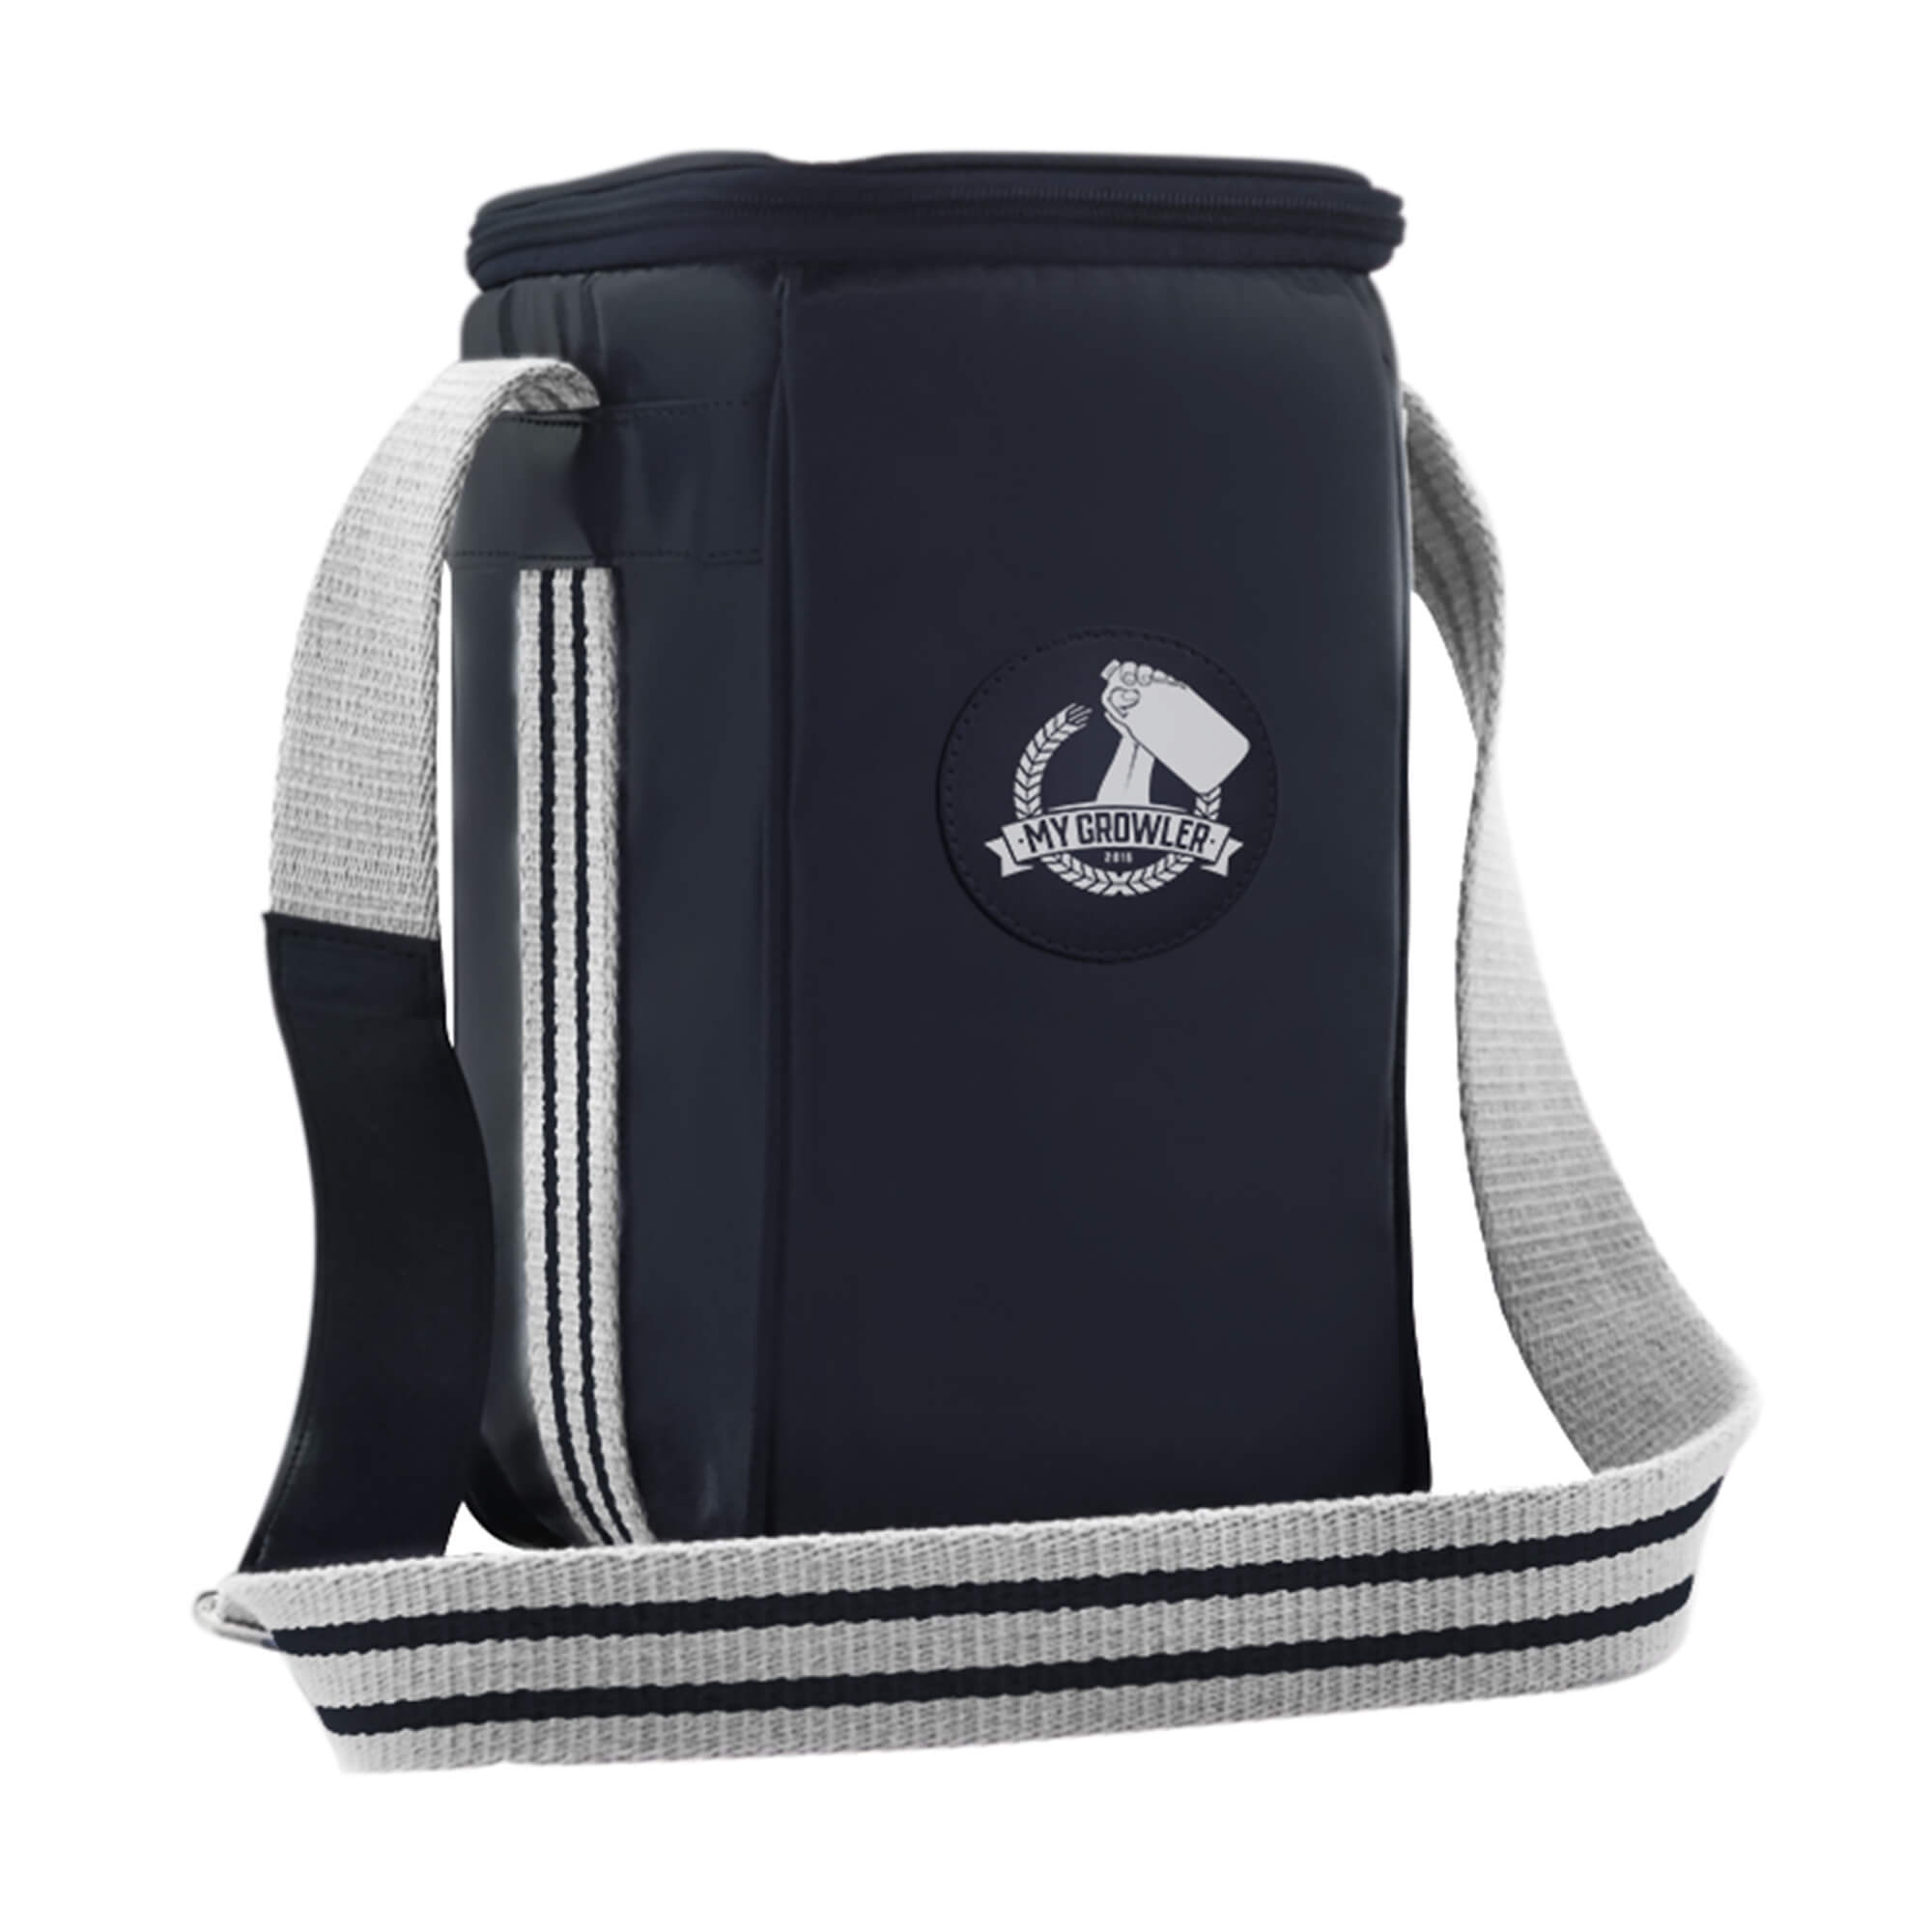 Growler Bag Travel para 1 growler - cor azul